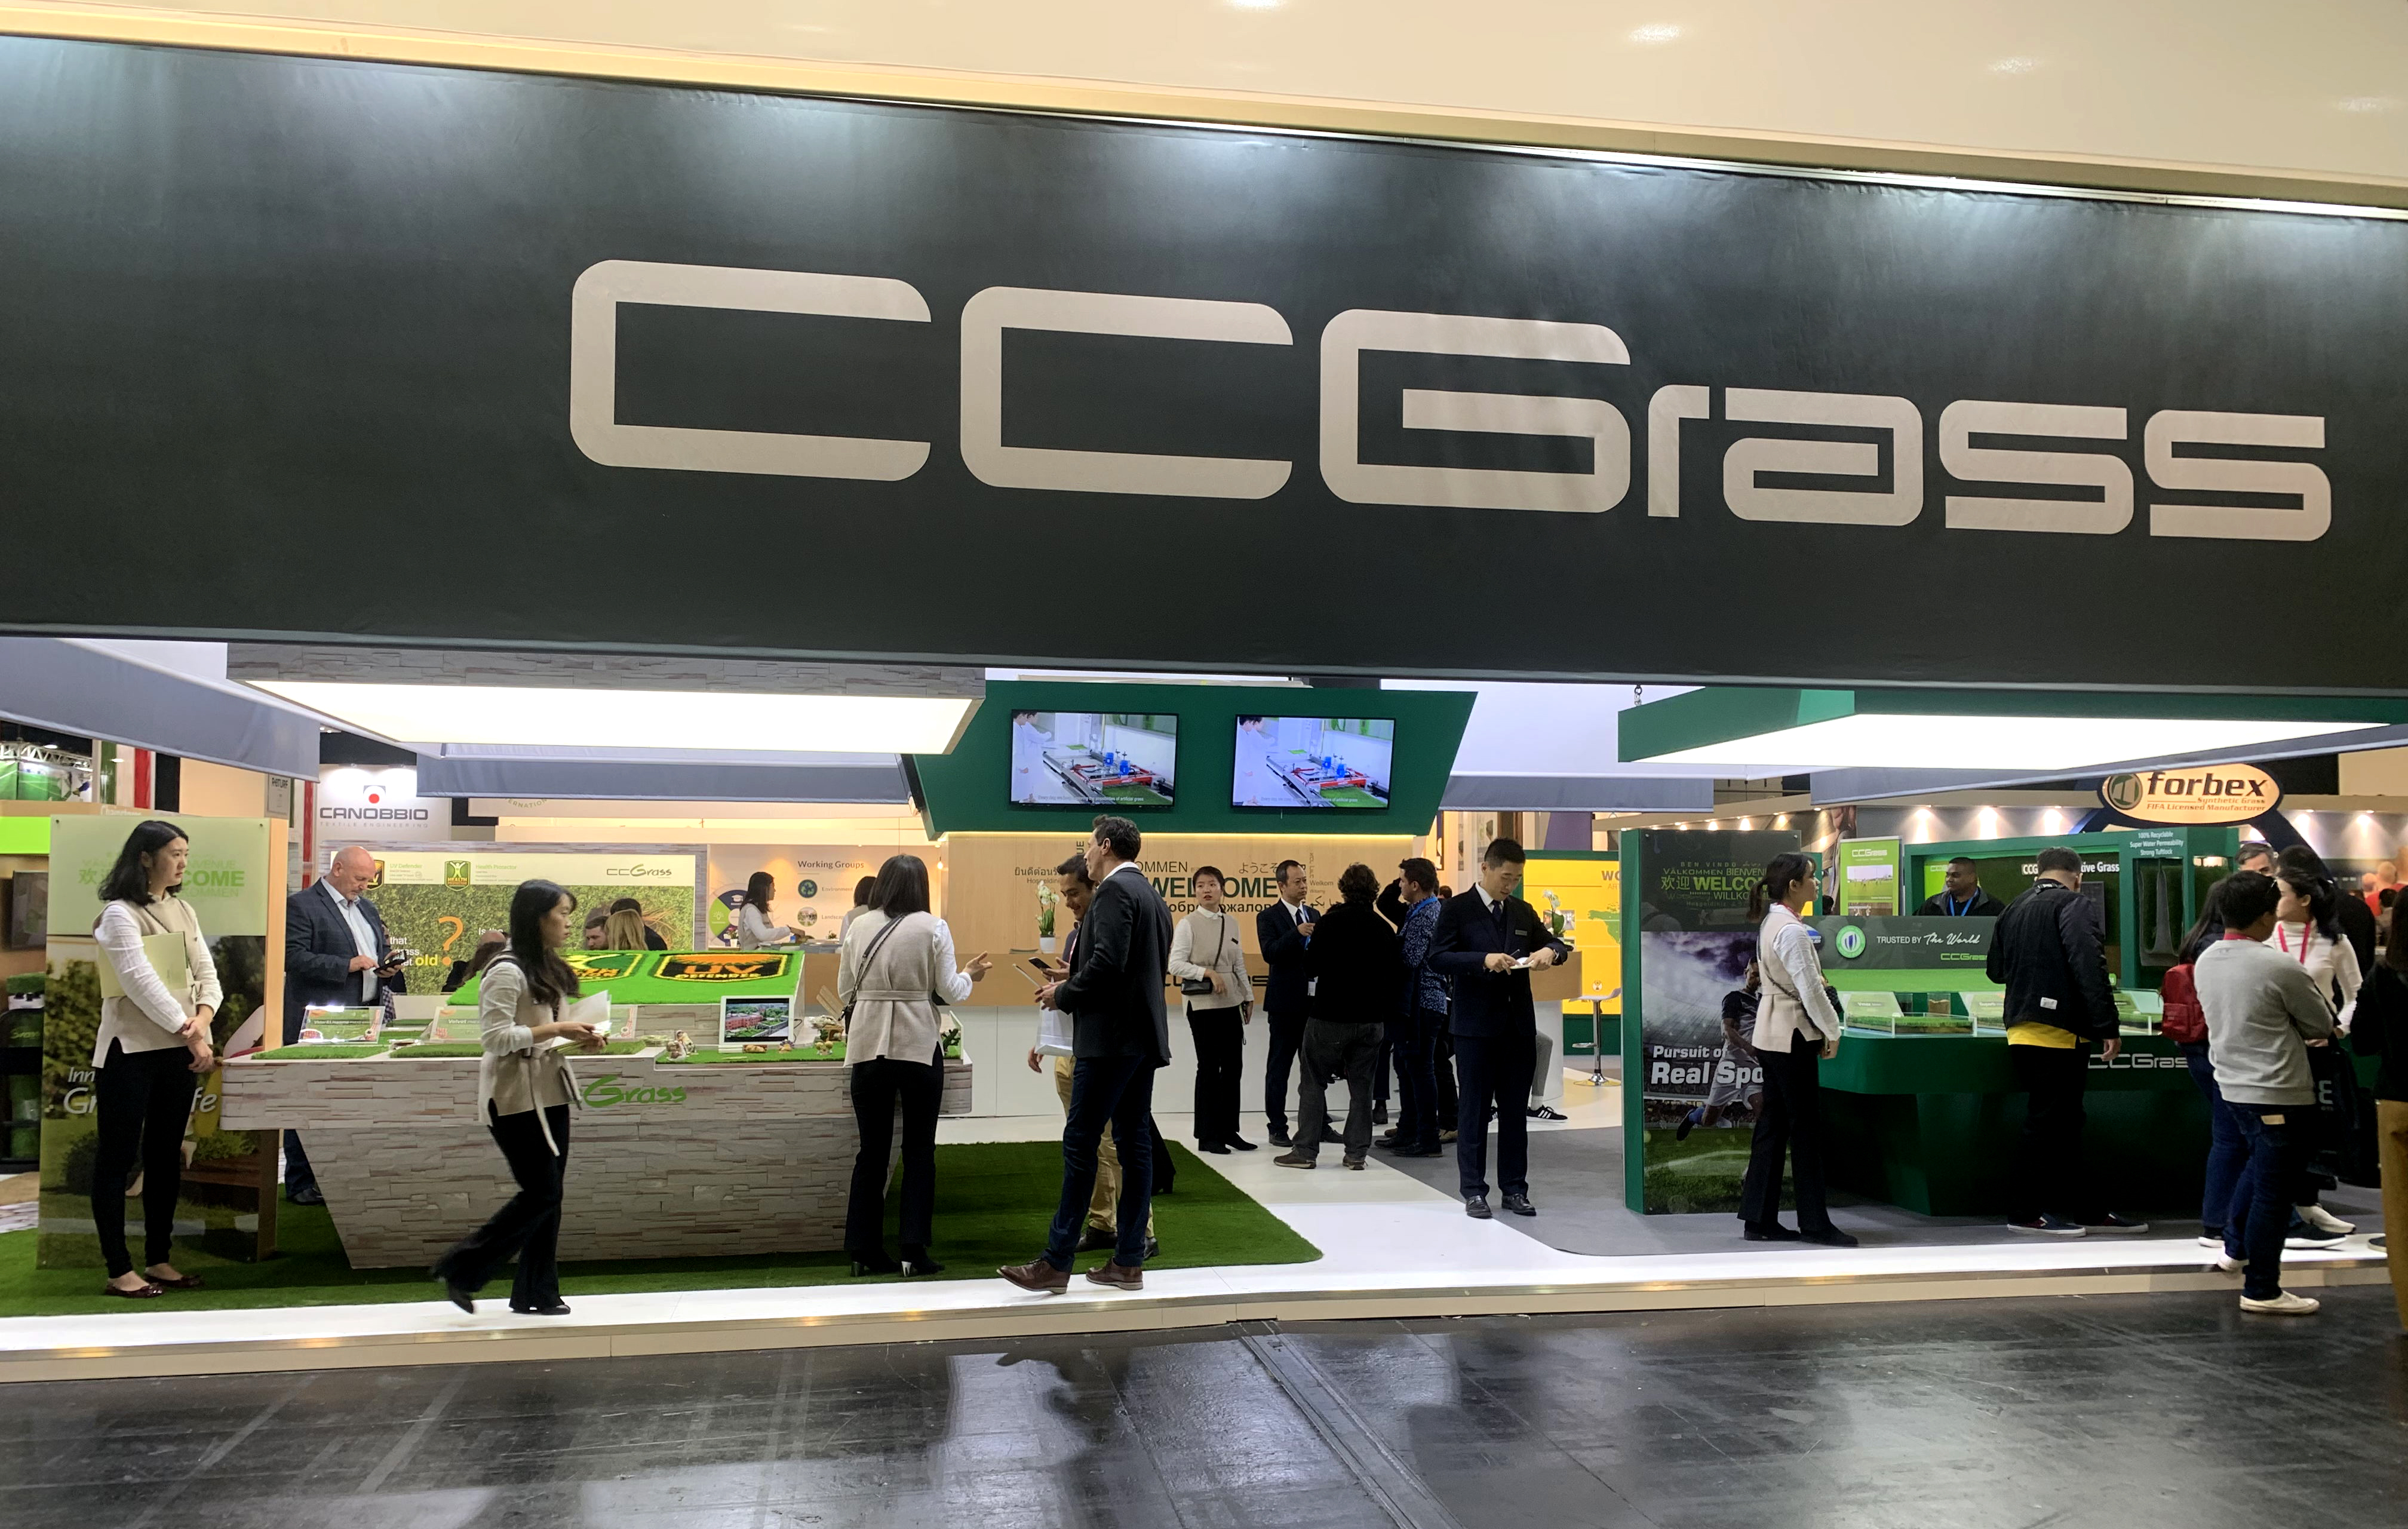 Great success for CCGrass at this year's FSB exhibition in Cologne